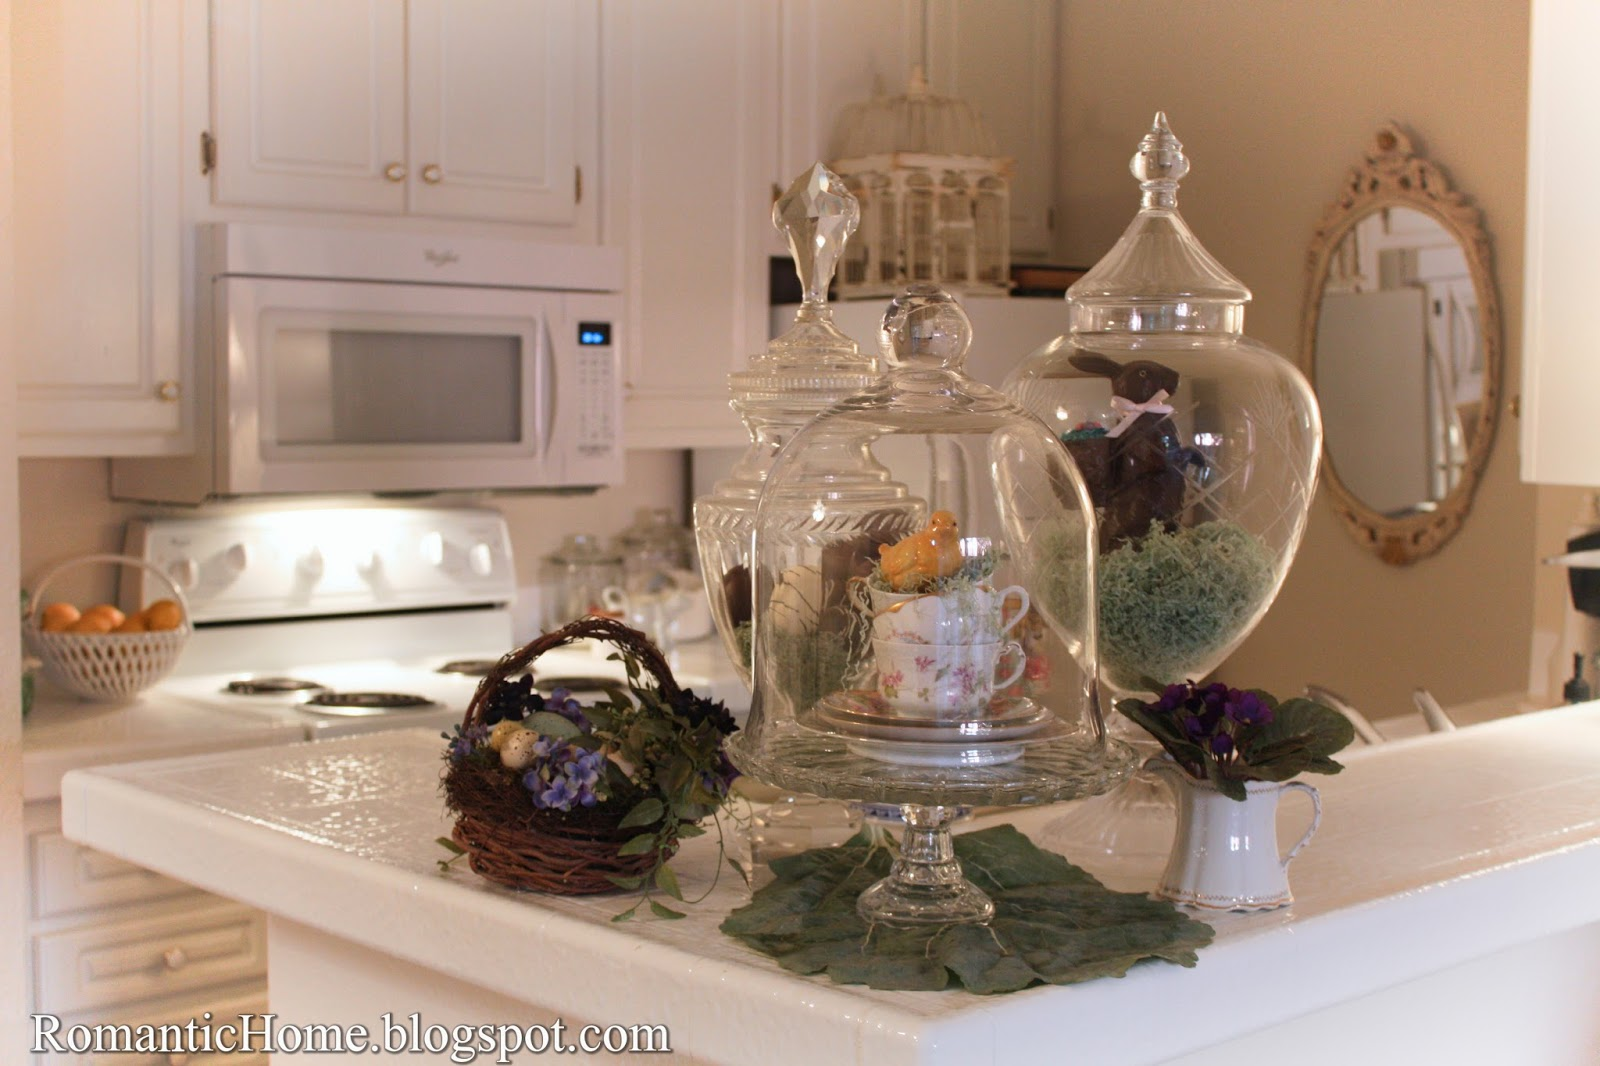 My Romantic Home: A little kitchen Easter decor - Show and